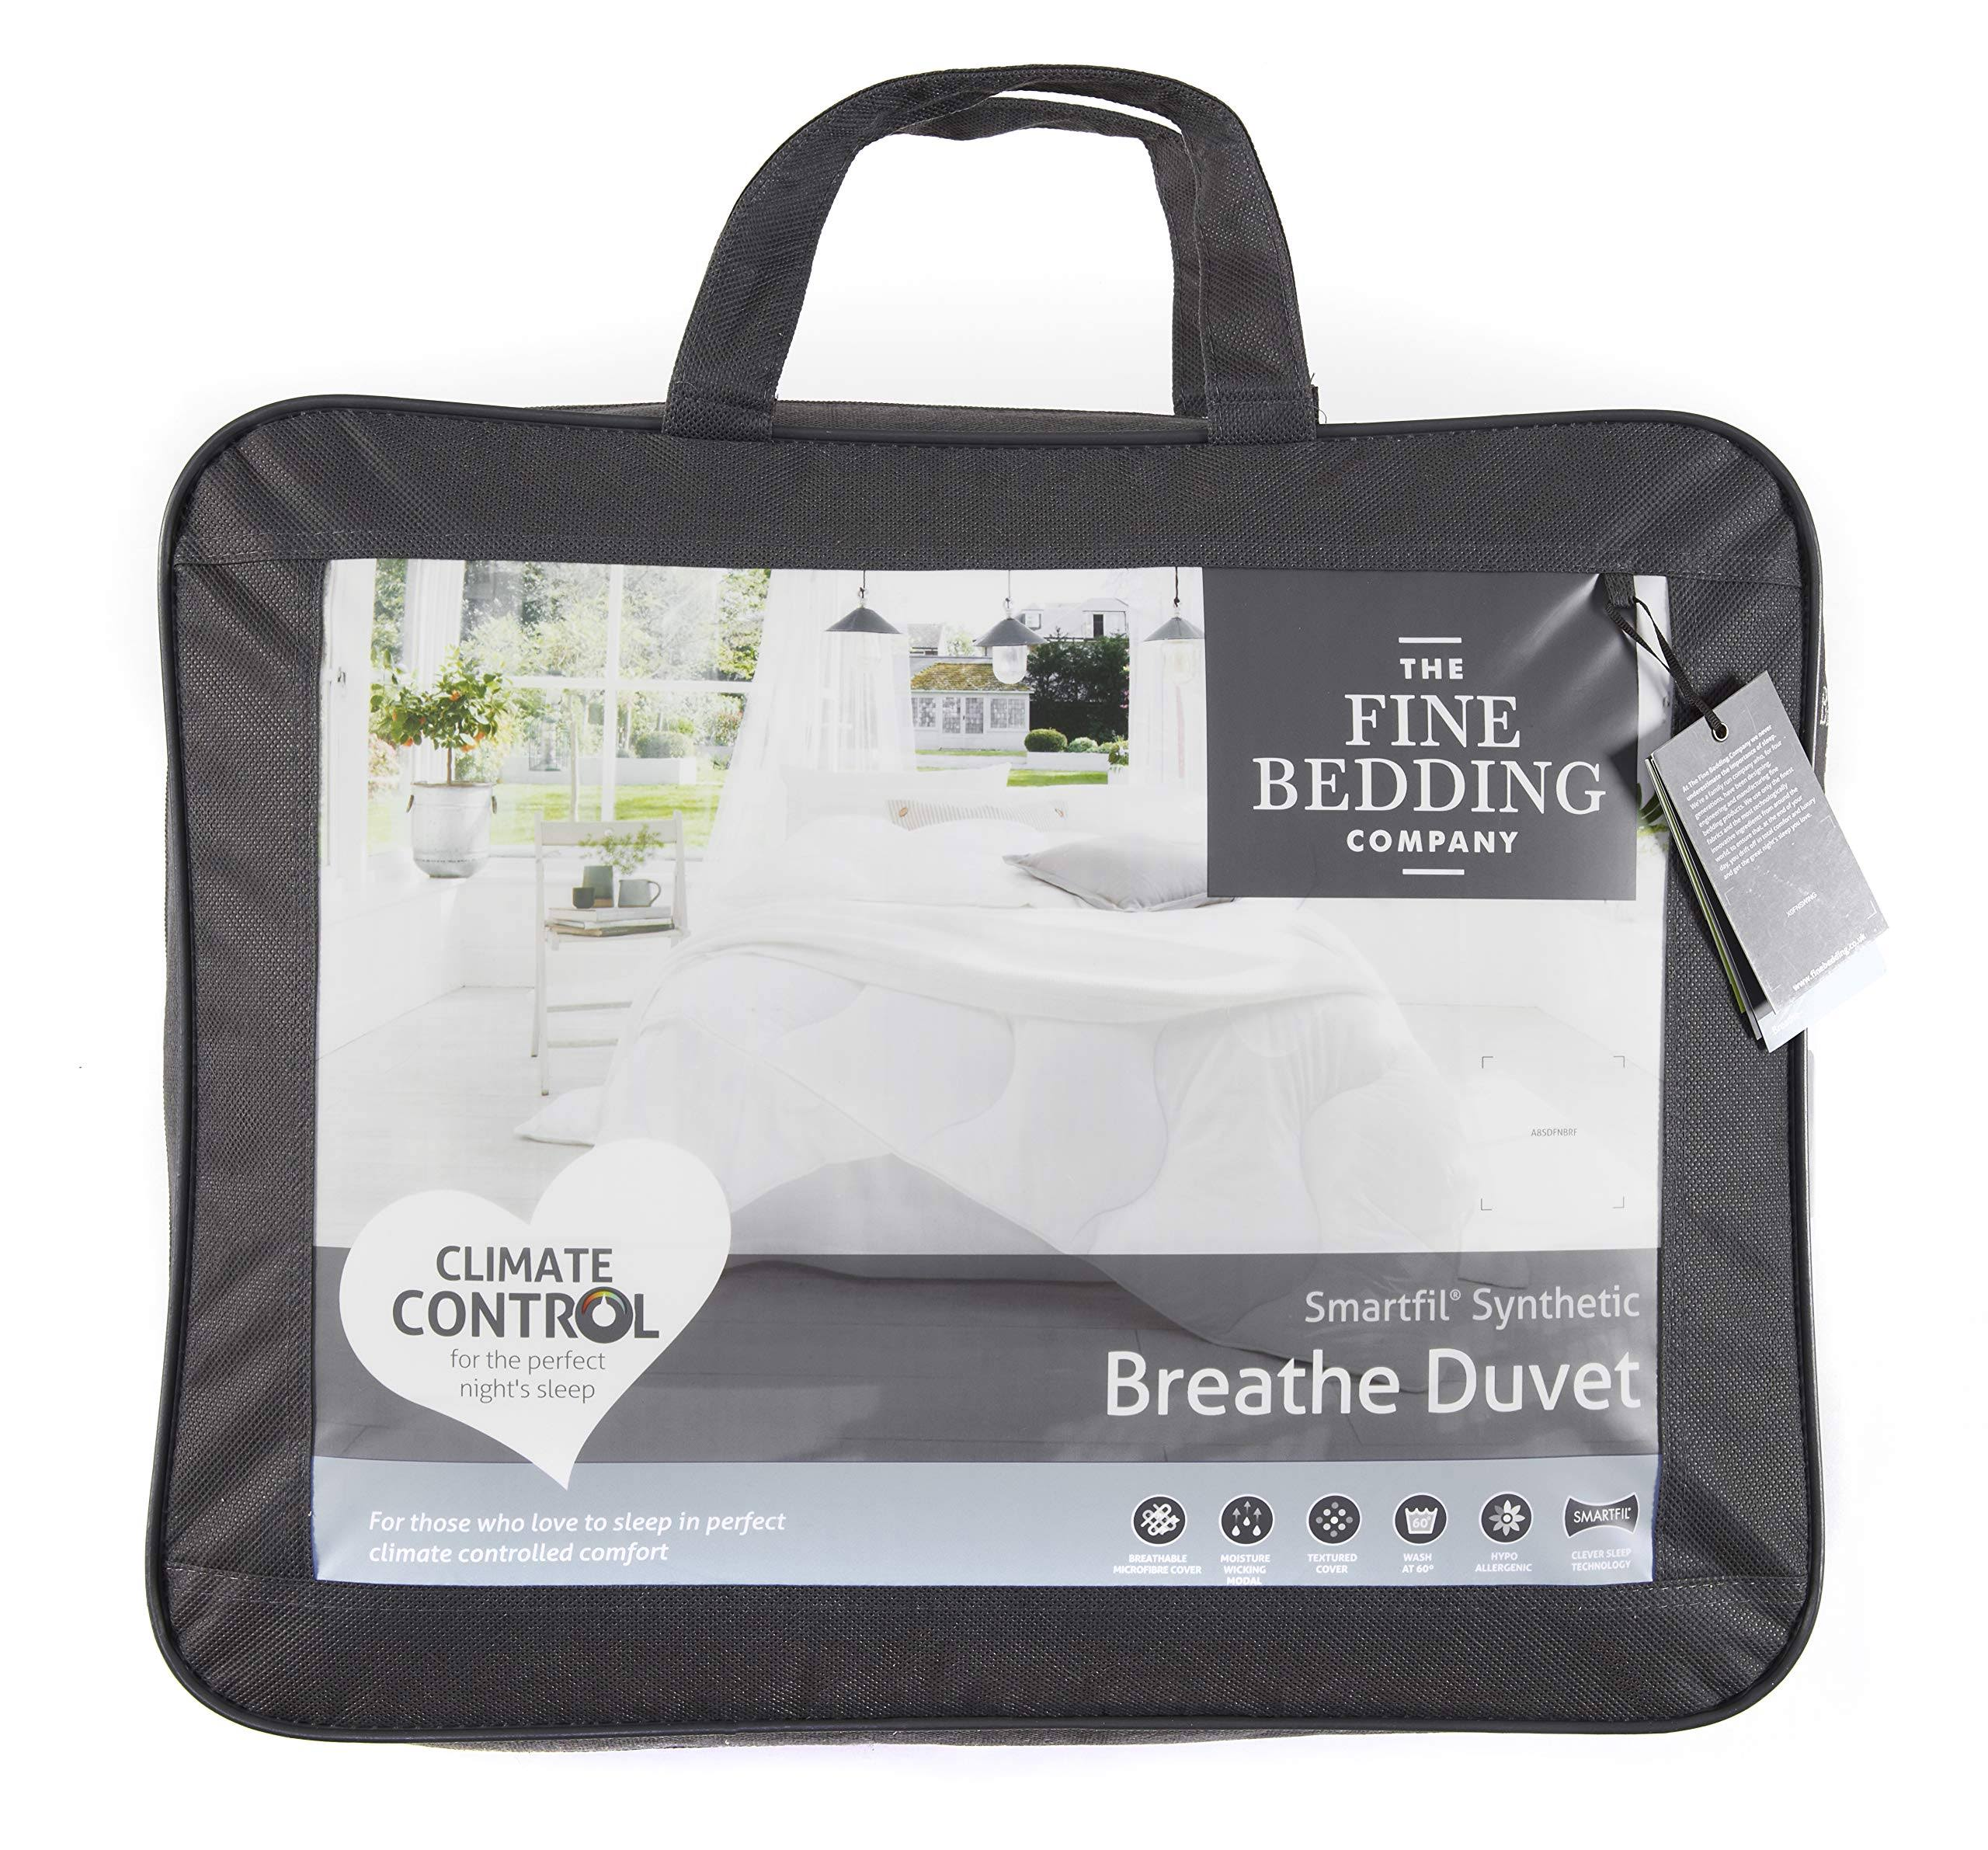 The Fine Bedding Company Breathe Duvet - 13.5 Tog, Double